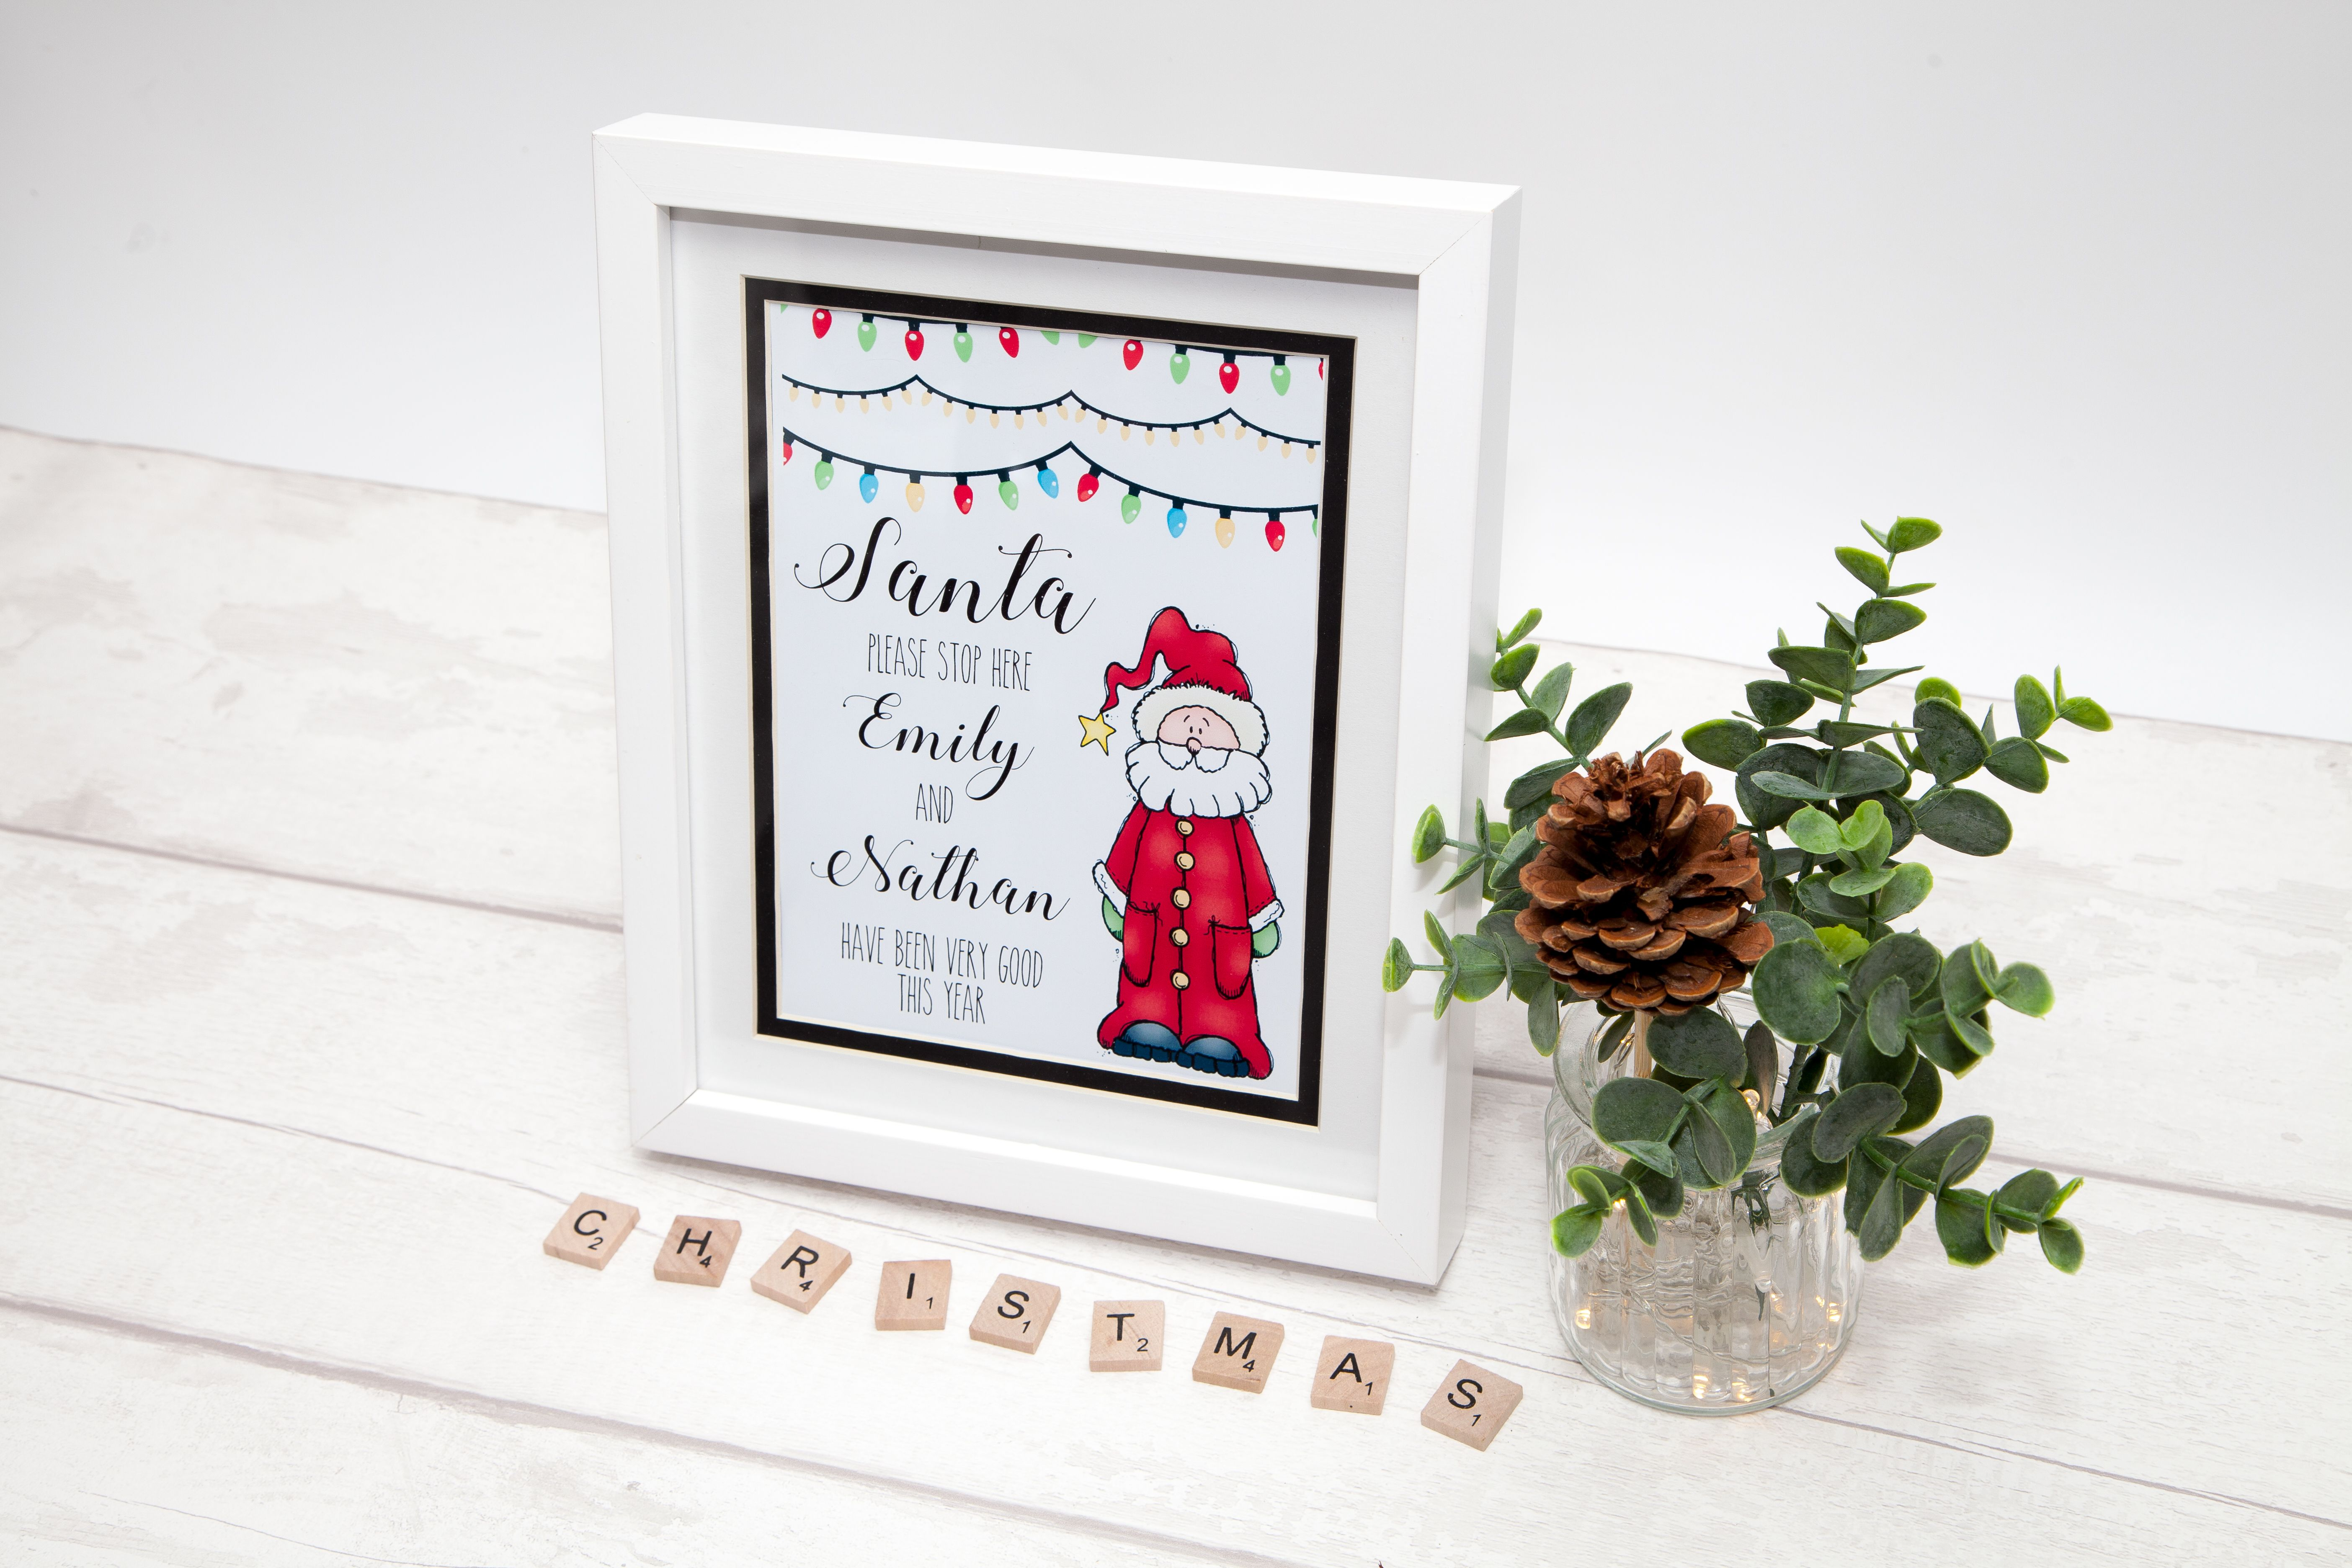 Personalised Santa Stop Here Window Signs Christmas Gift for him her!